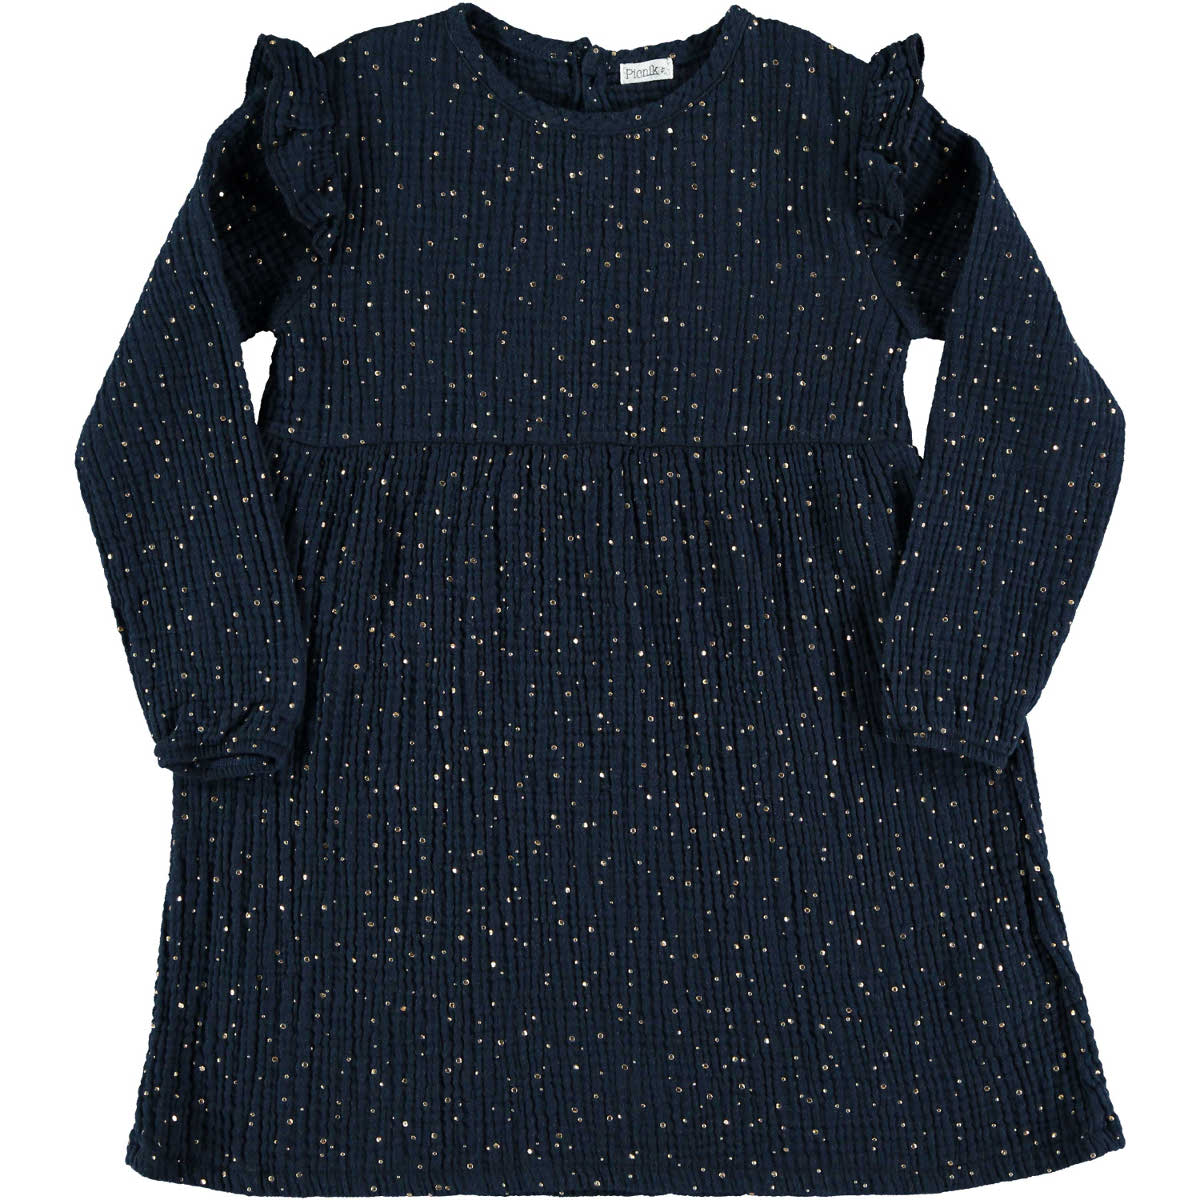 Picnik Navy Dotted Dress